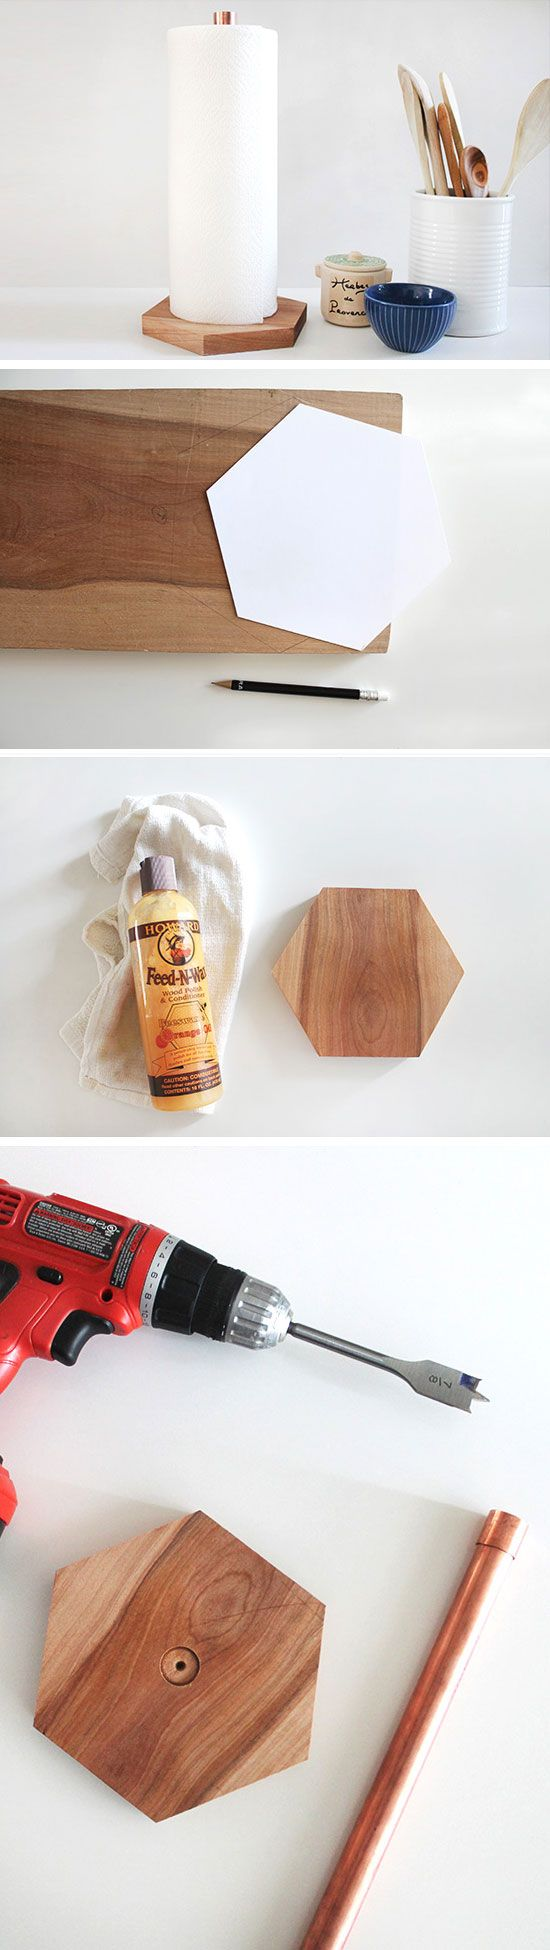 Copper + Wood Paper Towel Holder | Click Pick for 23 DIY Kitchen Organization Ideas | DIY Kitchen Storage Ideas for Small Kitchens